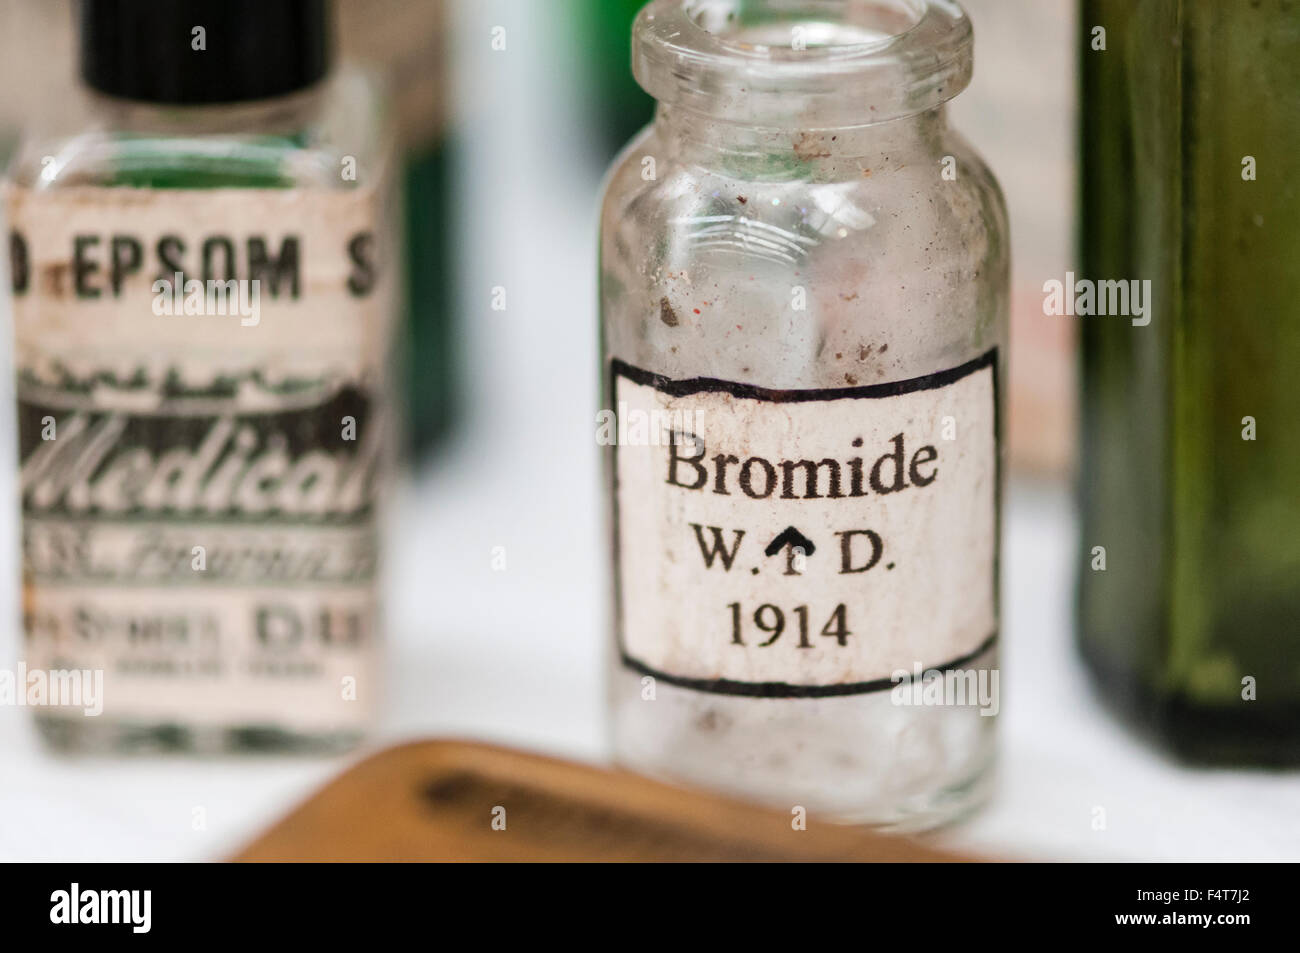 bromide personals Ethidium bromide is an odorless solid that is irritating to the eyes, skin, mucous membranes, and upper respiratory tract ethidium bromide is a potent mutagen and should be treated as a possible reproductive hazard and carcinogen.